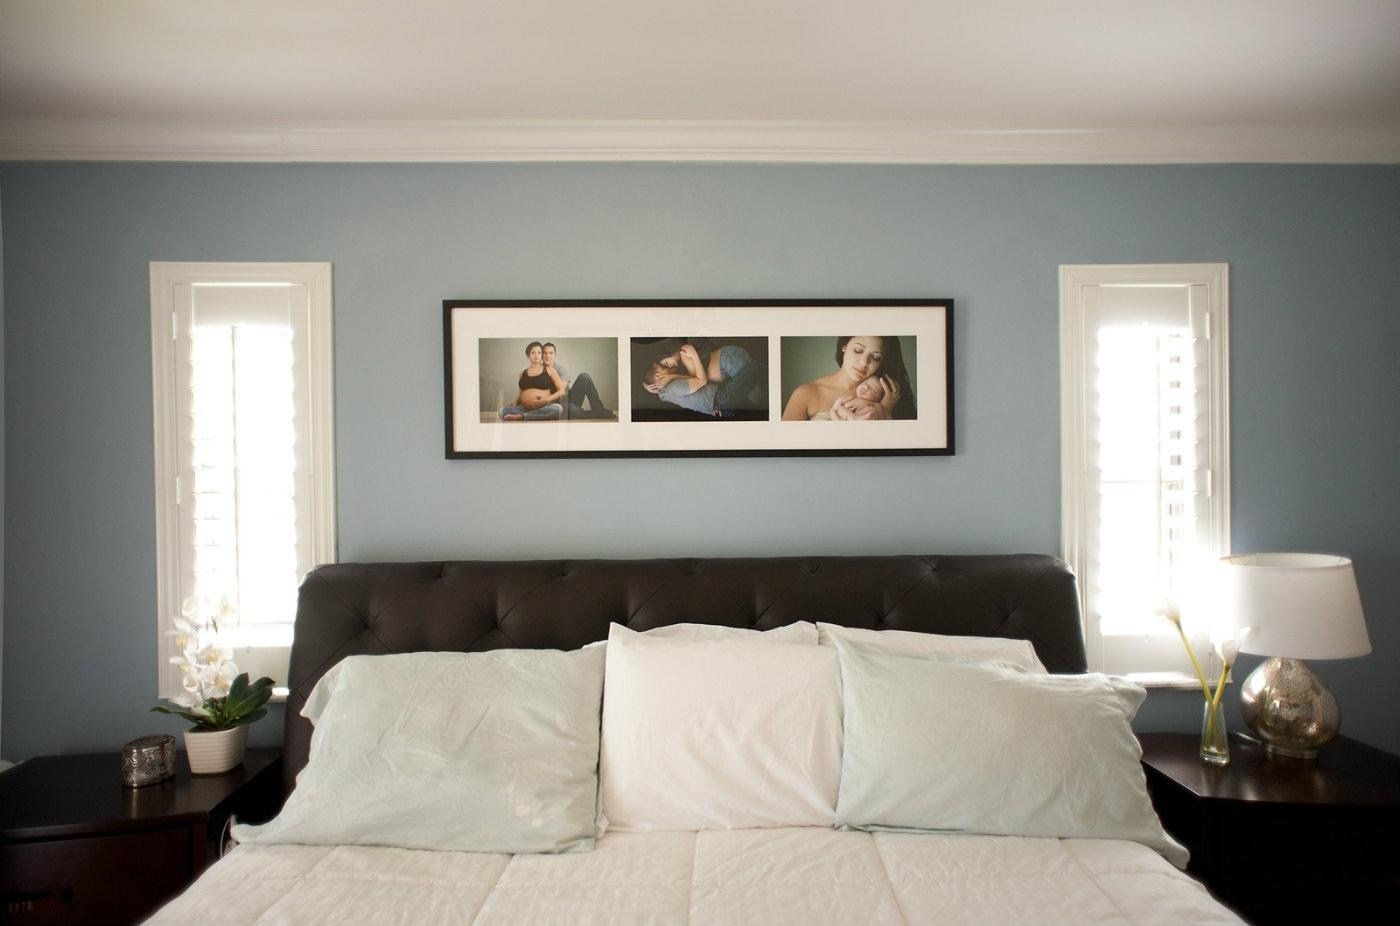 Best 20 Best Collection Of Bedroom Framed Wall Art Wall Art Ideas With Pictures